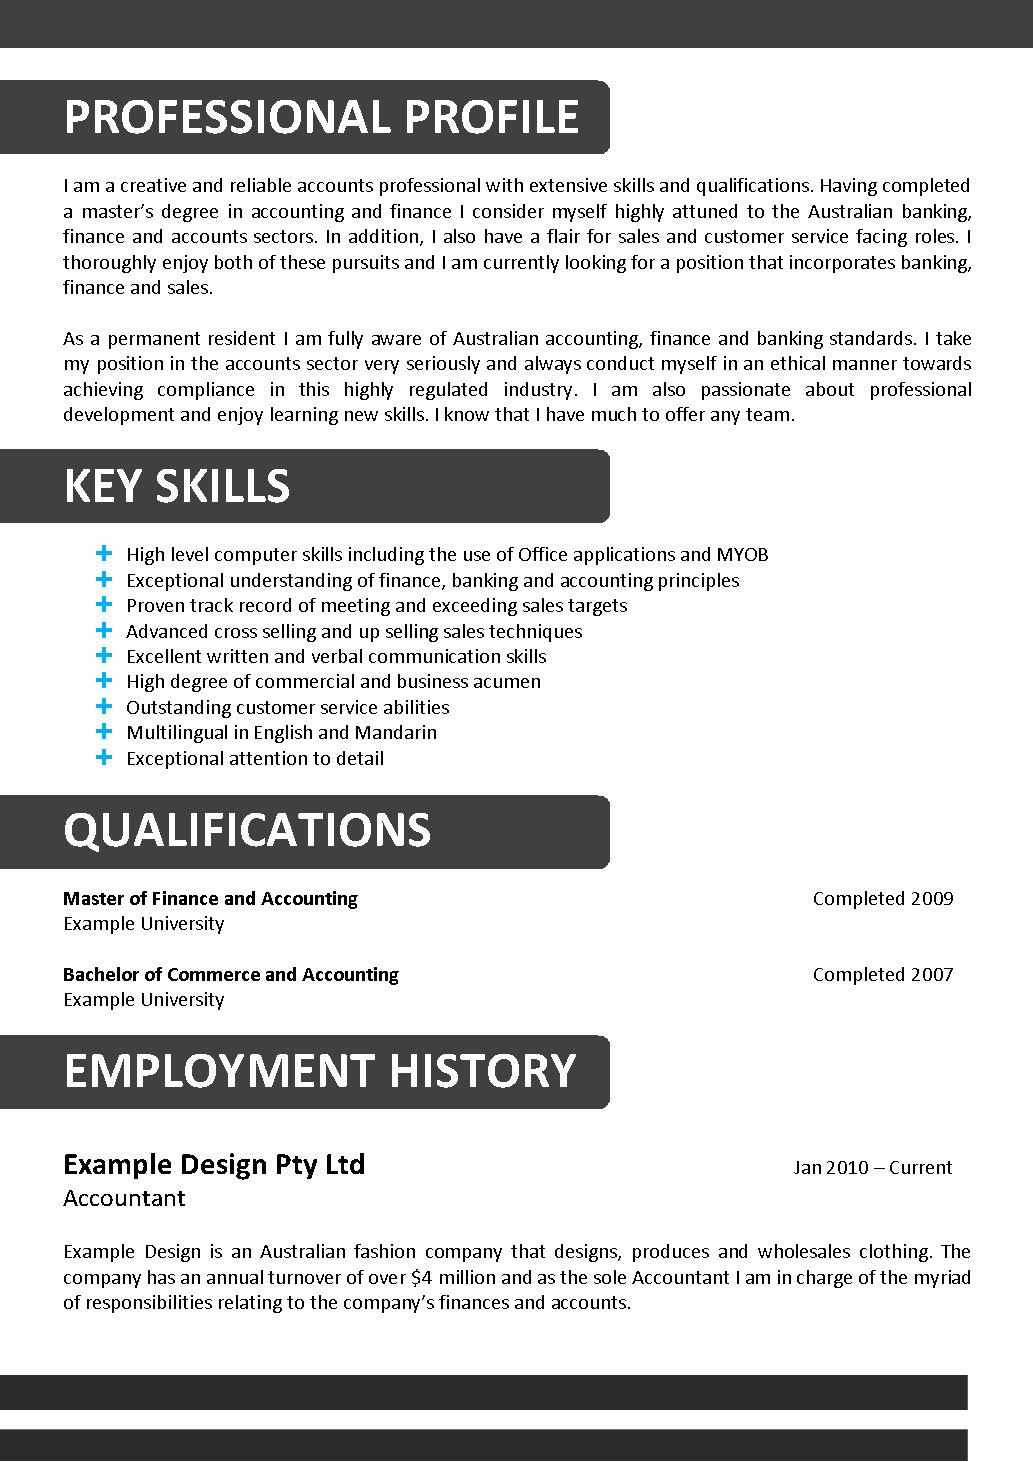 Creating A Resume Online Excel A Key To Drafting The Perfect Resume  Dadakan Resume For Pharmacist Word with Sous Chef Resume Pdf A Key To Drafting The Perfect Resume Tags Perfect Resume Examples  Perfect Resume Template Perfect Resume Sample  School Social Worker Resume Word